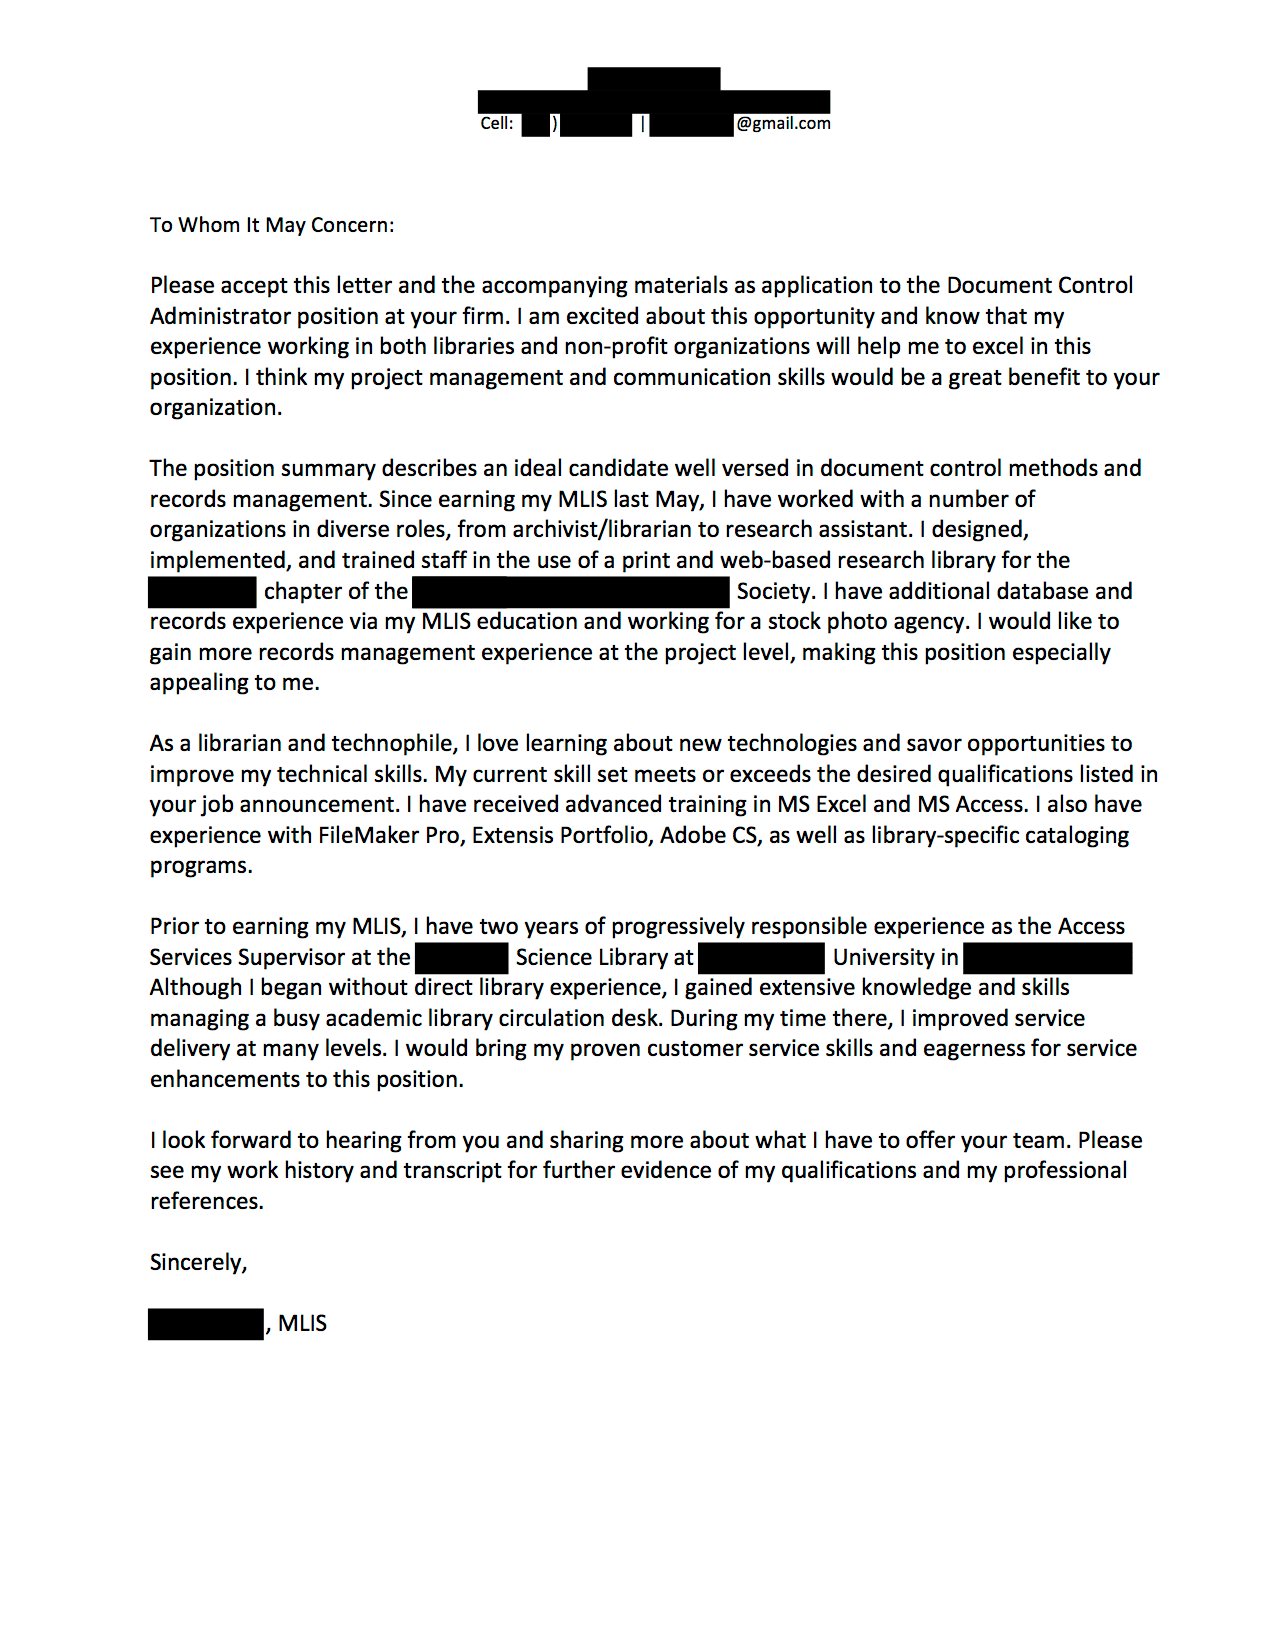 Document Control Administrator Cover Letter